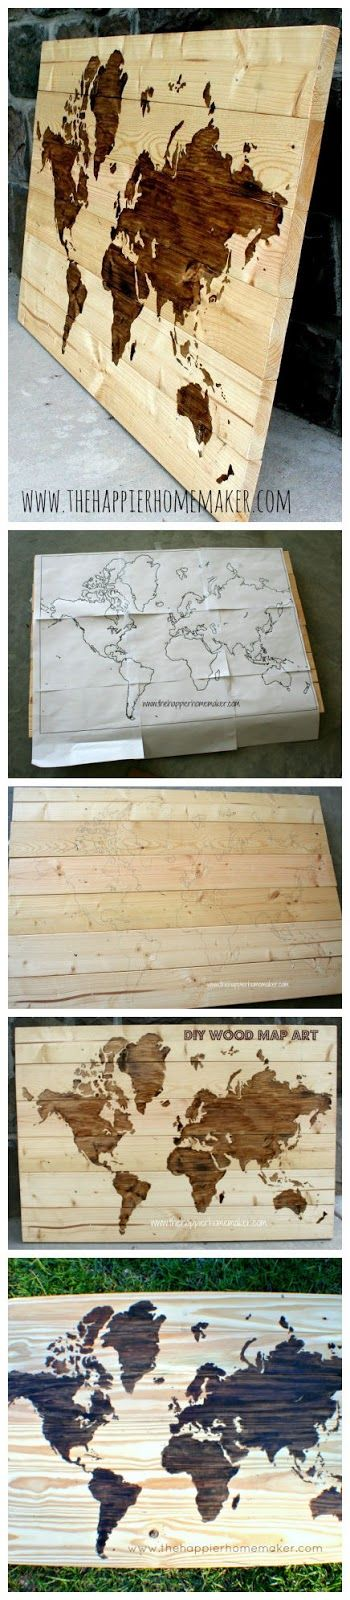 DIY Wooden World Map Art - hang on wall, then stick straight pins in where you've been: